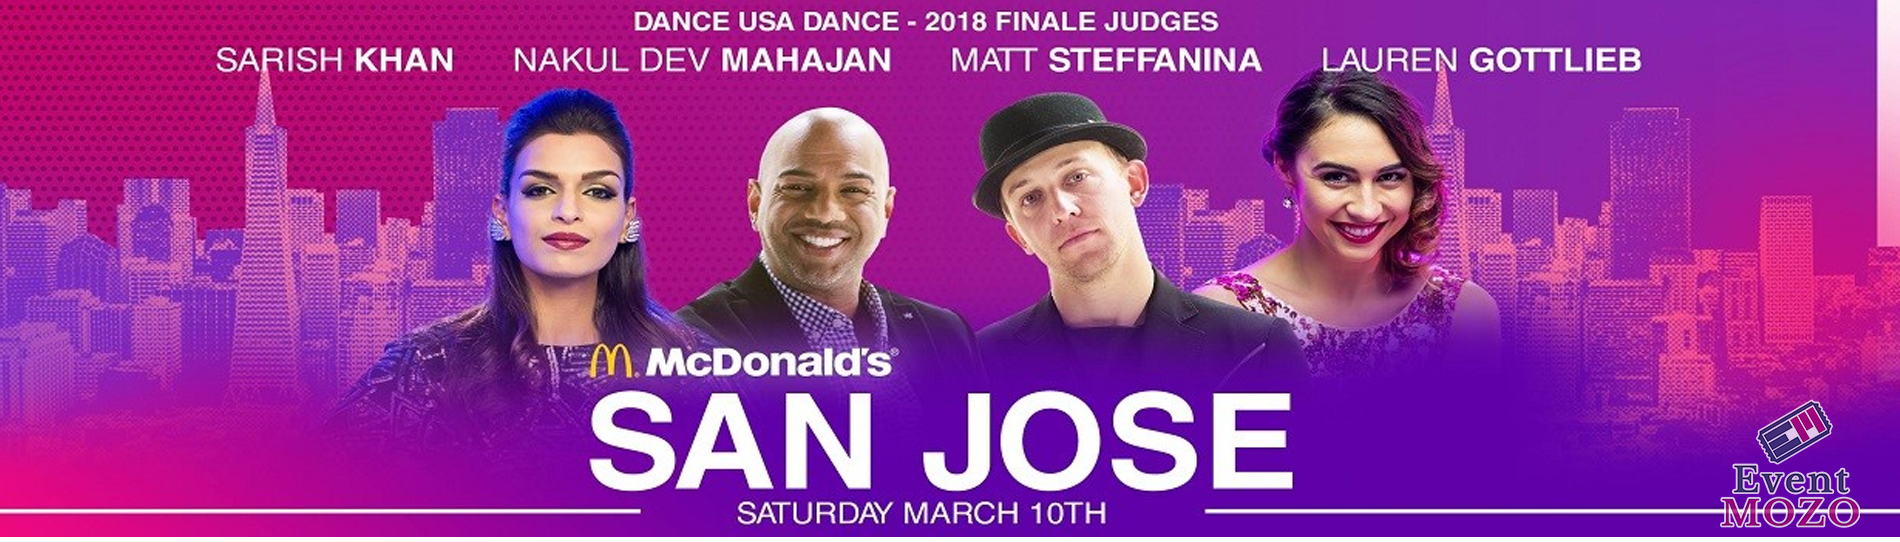 EventMozo Dance USA Dance 2018 - San Jose, CA